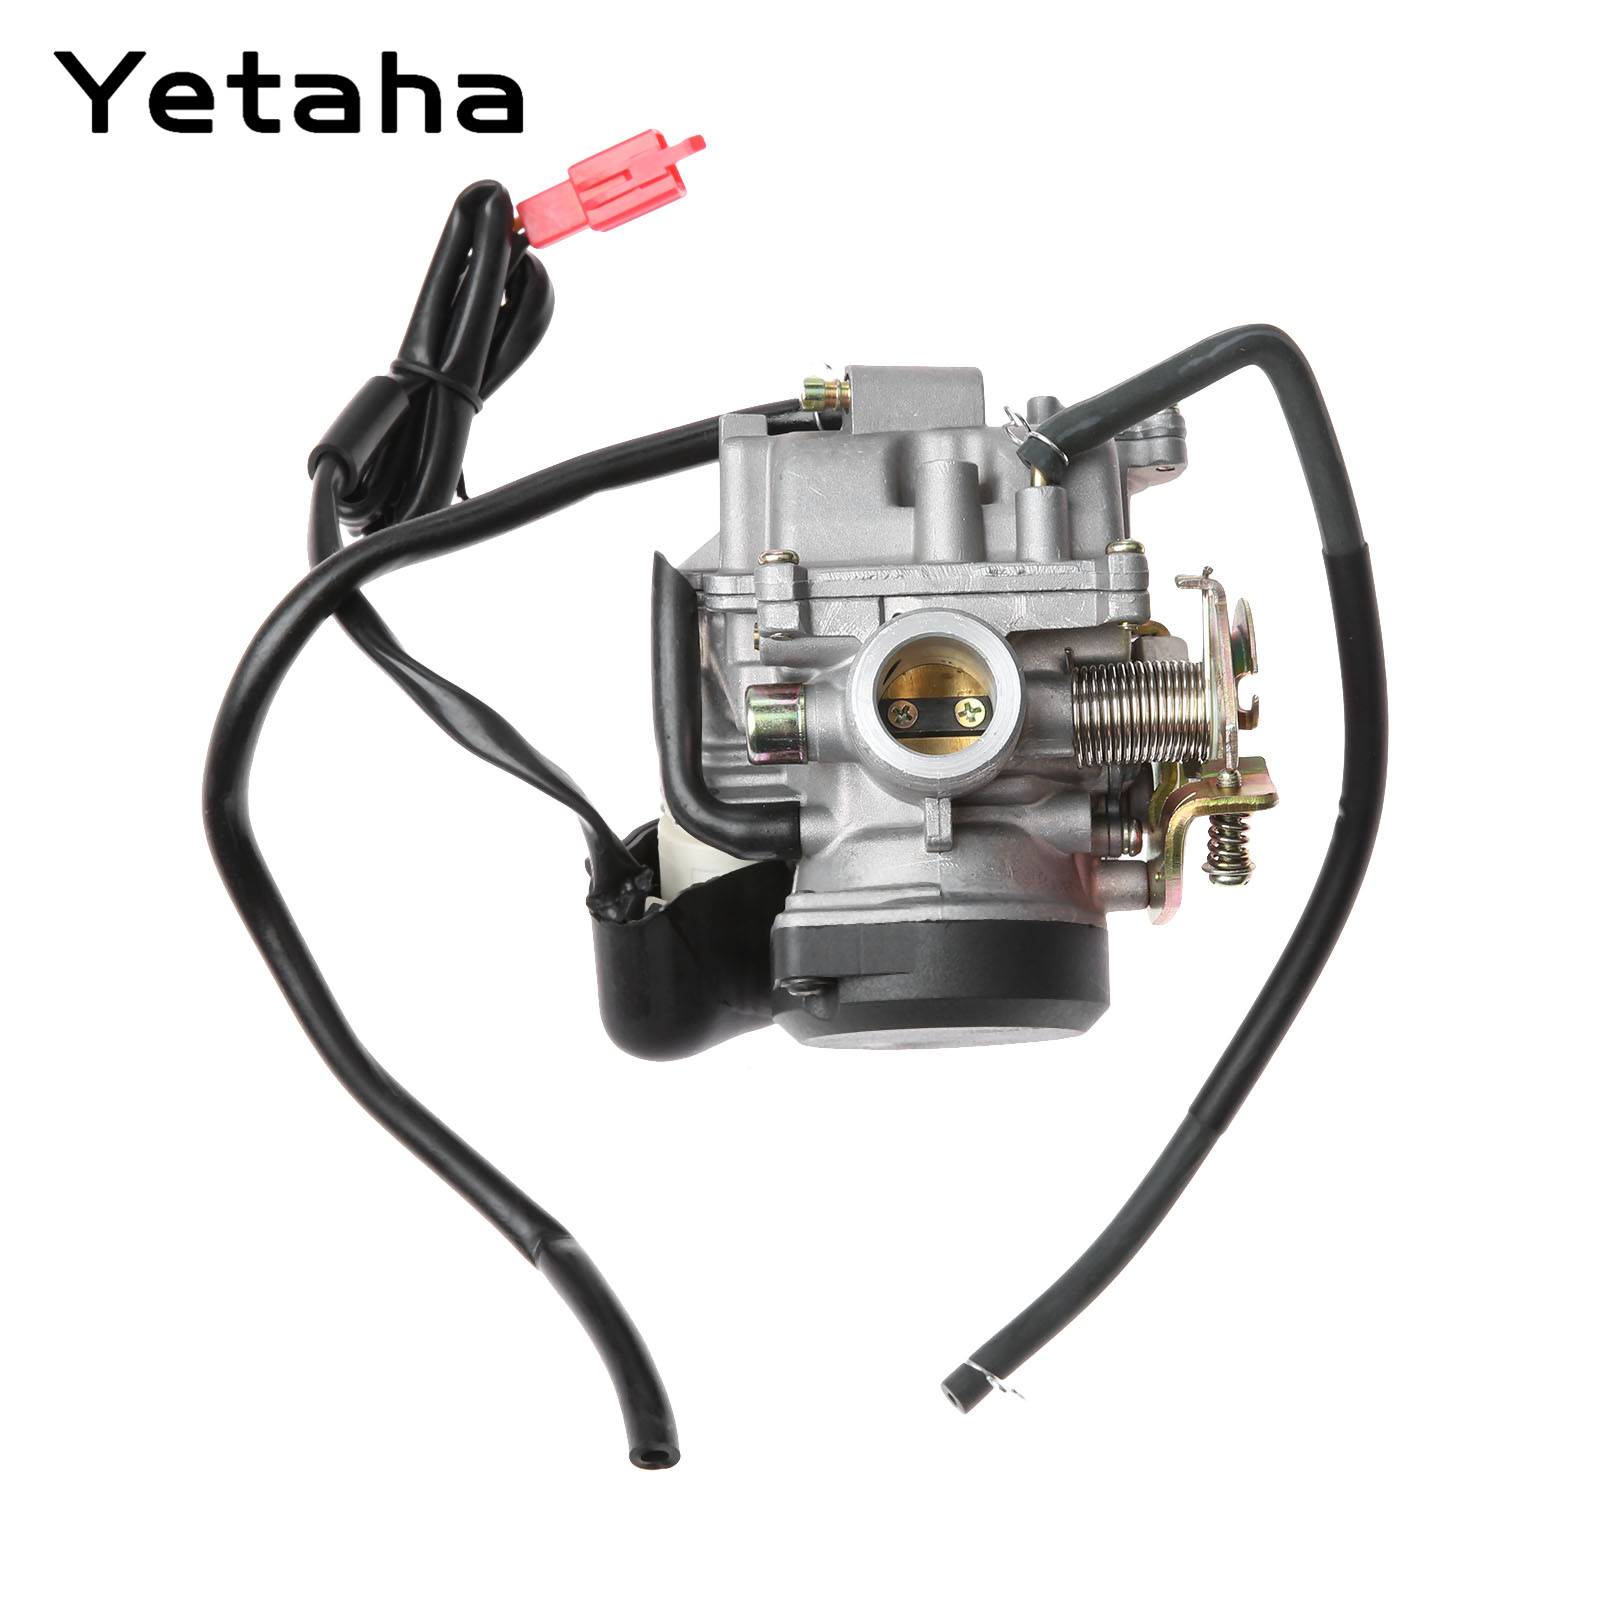 Motorcycle Carburetor Carb 18mm Carburettor For GY6 50cc 60cc 80cc 4 Stroke Scooter Moped ATV Pit Dirt Bike Motocross Carburador original 26mm mikuni carburetor for cbt125 cb125t cbt250 ca250 carburador de moto